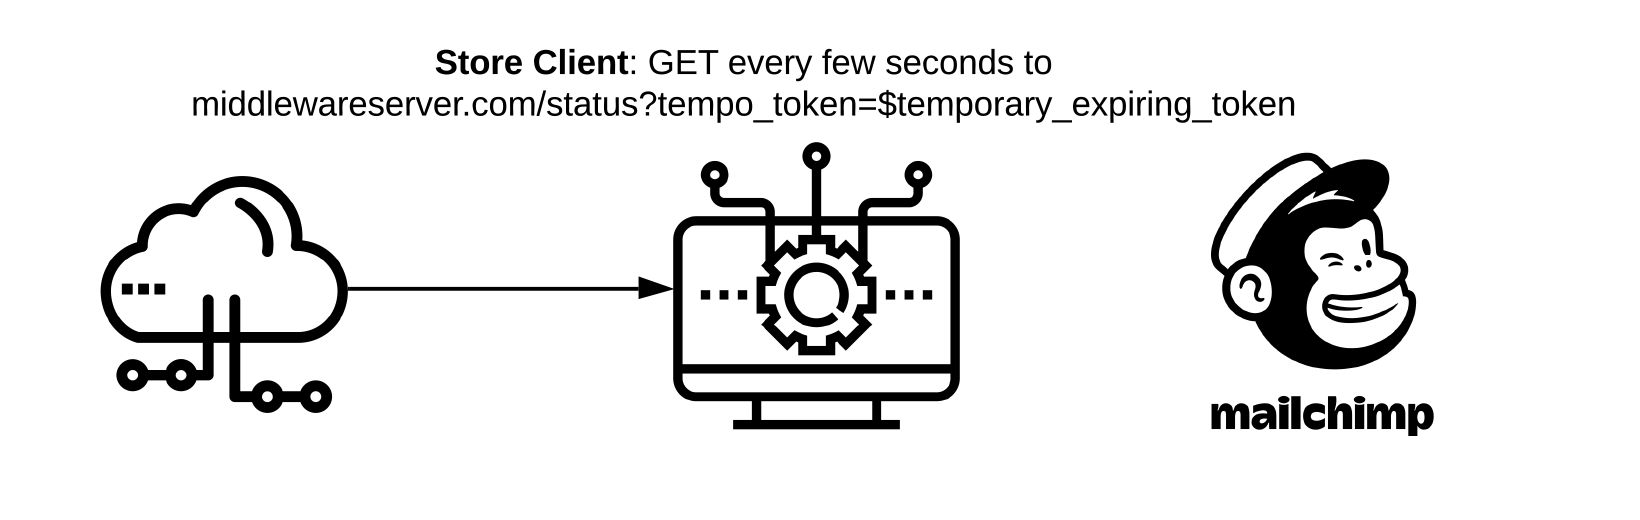 Store Client/Browser: GET every few seconds to middlewareserver.com/status?temp_token=$temporary_expiring_token